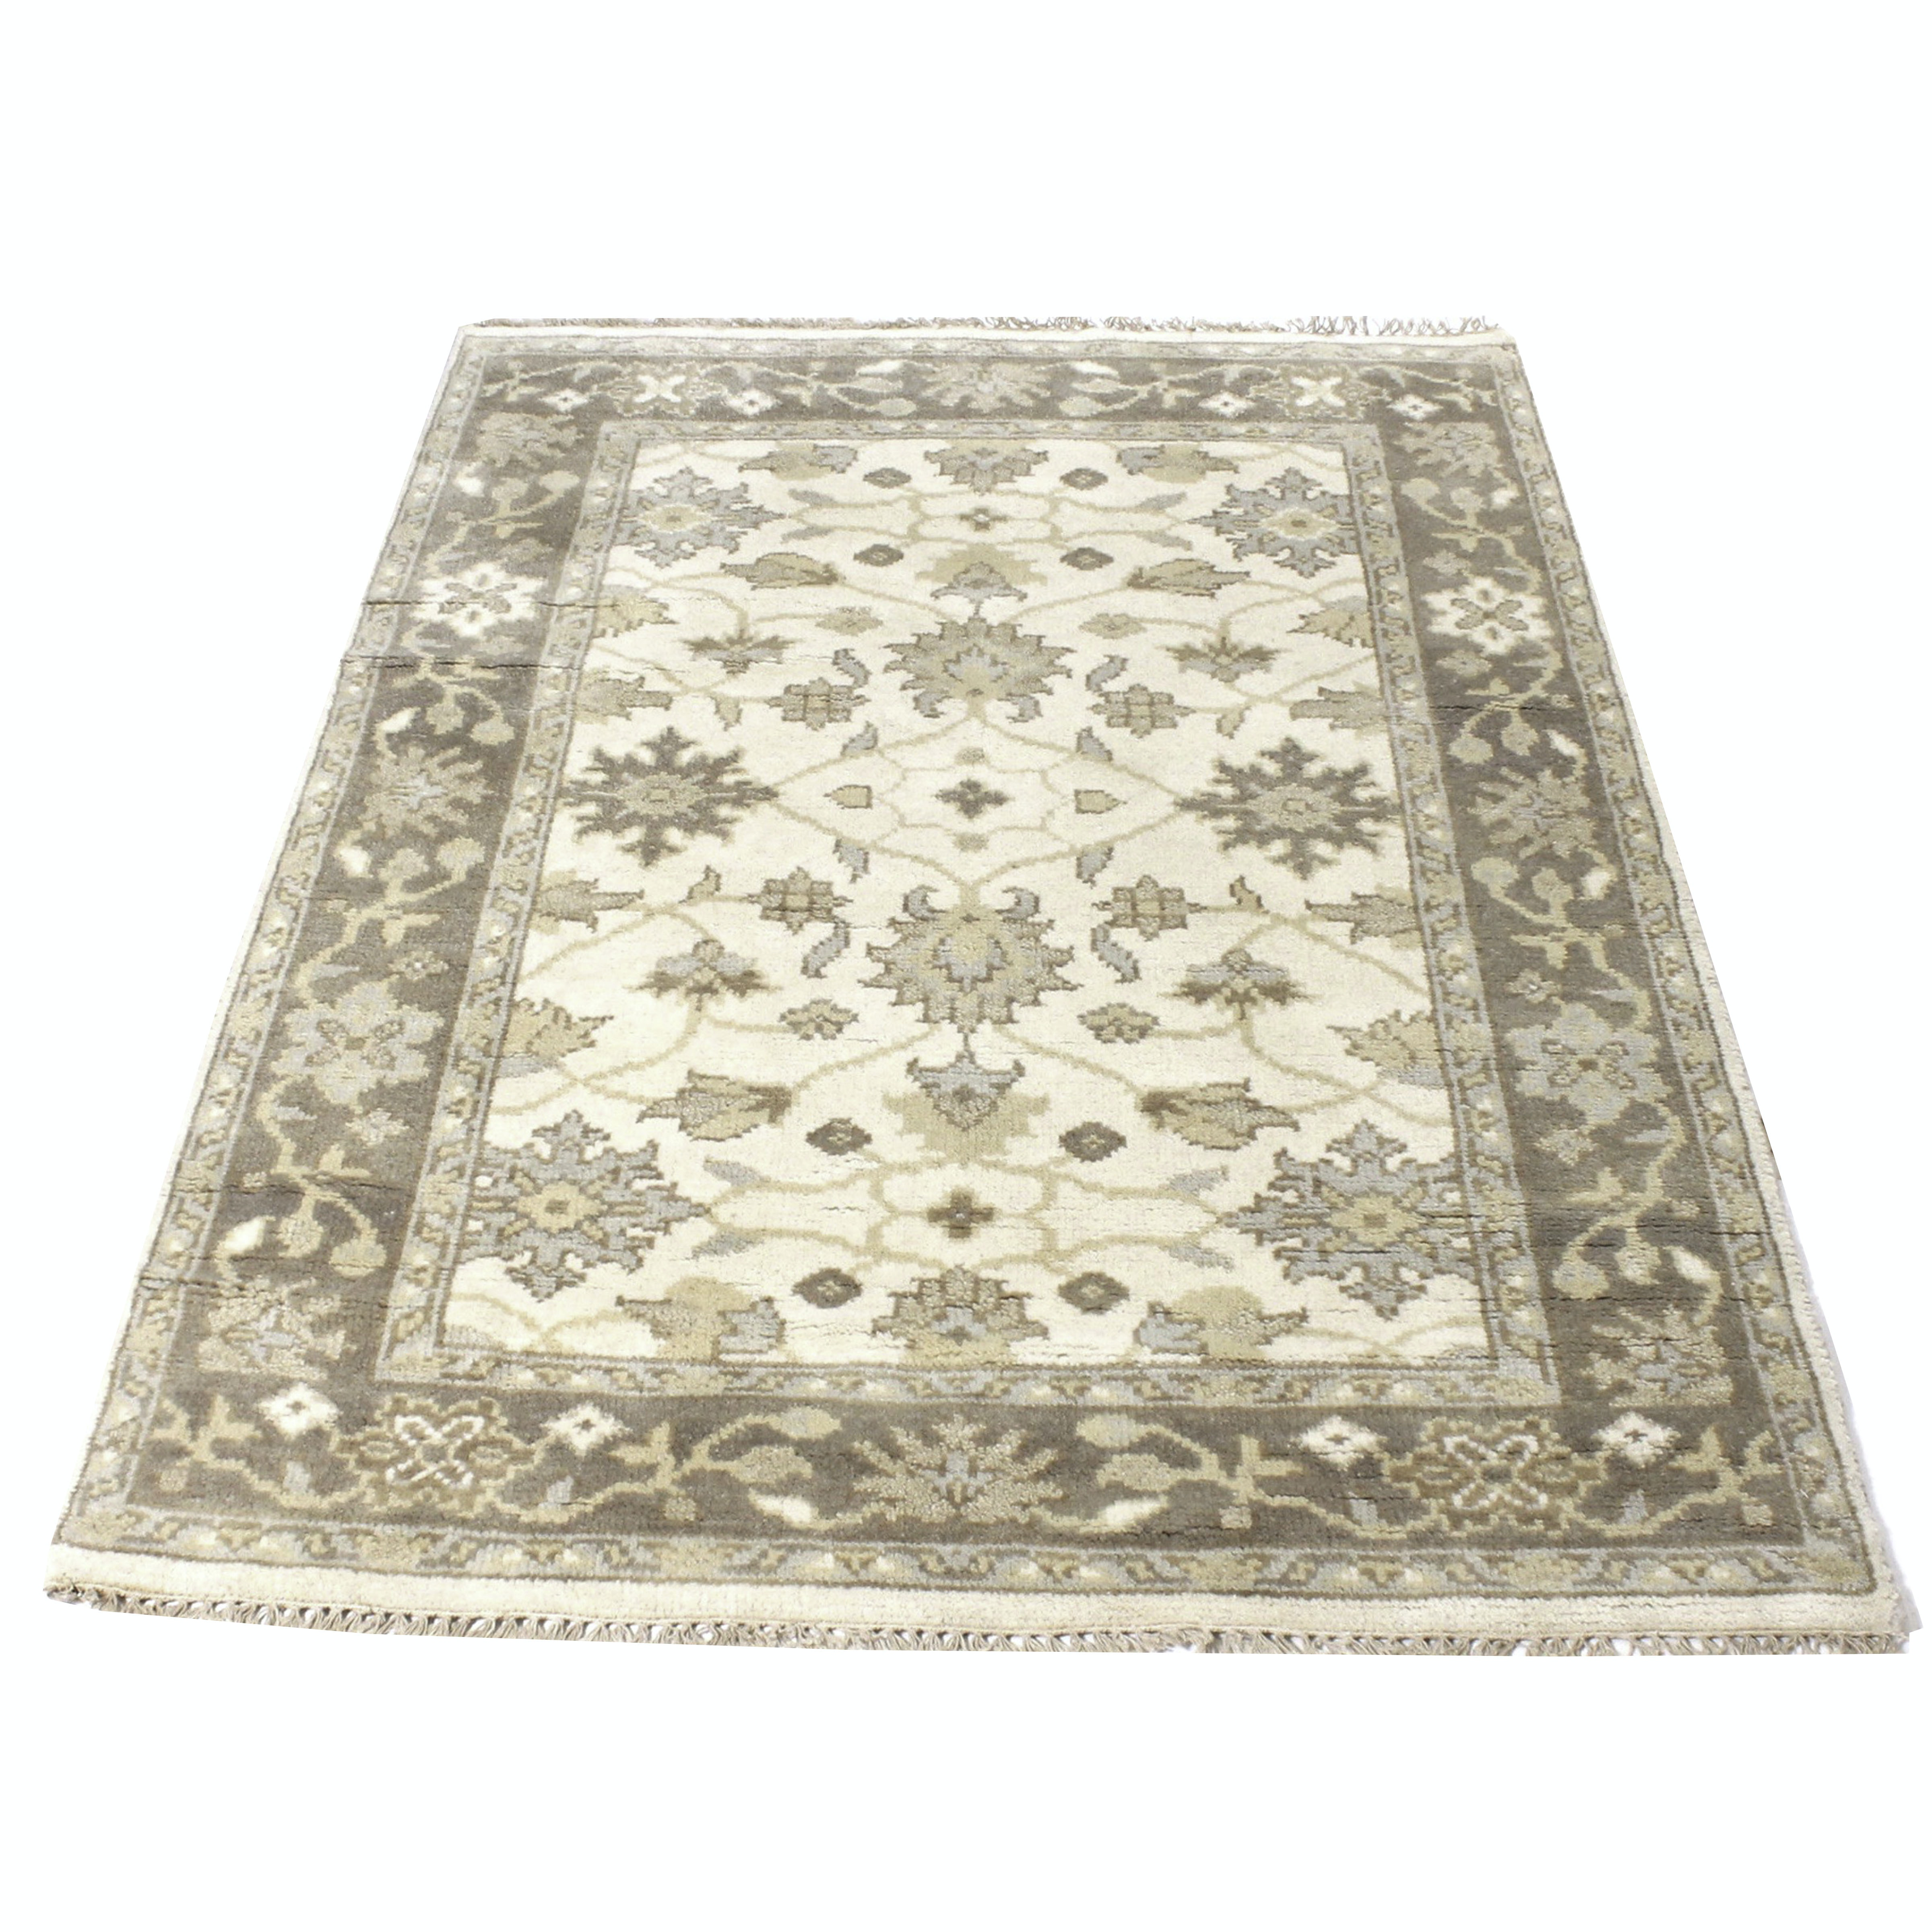 4' x 6' Hand-Knotted Indo-Persian Oushak Chobi Rug